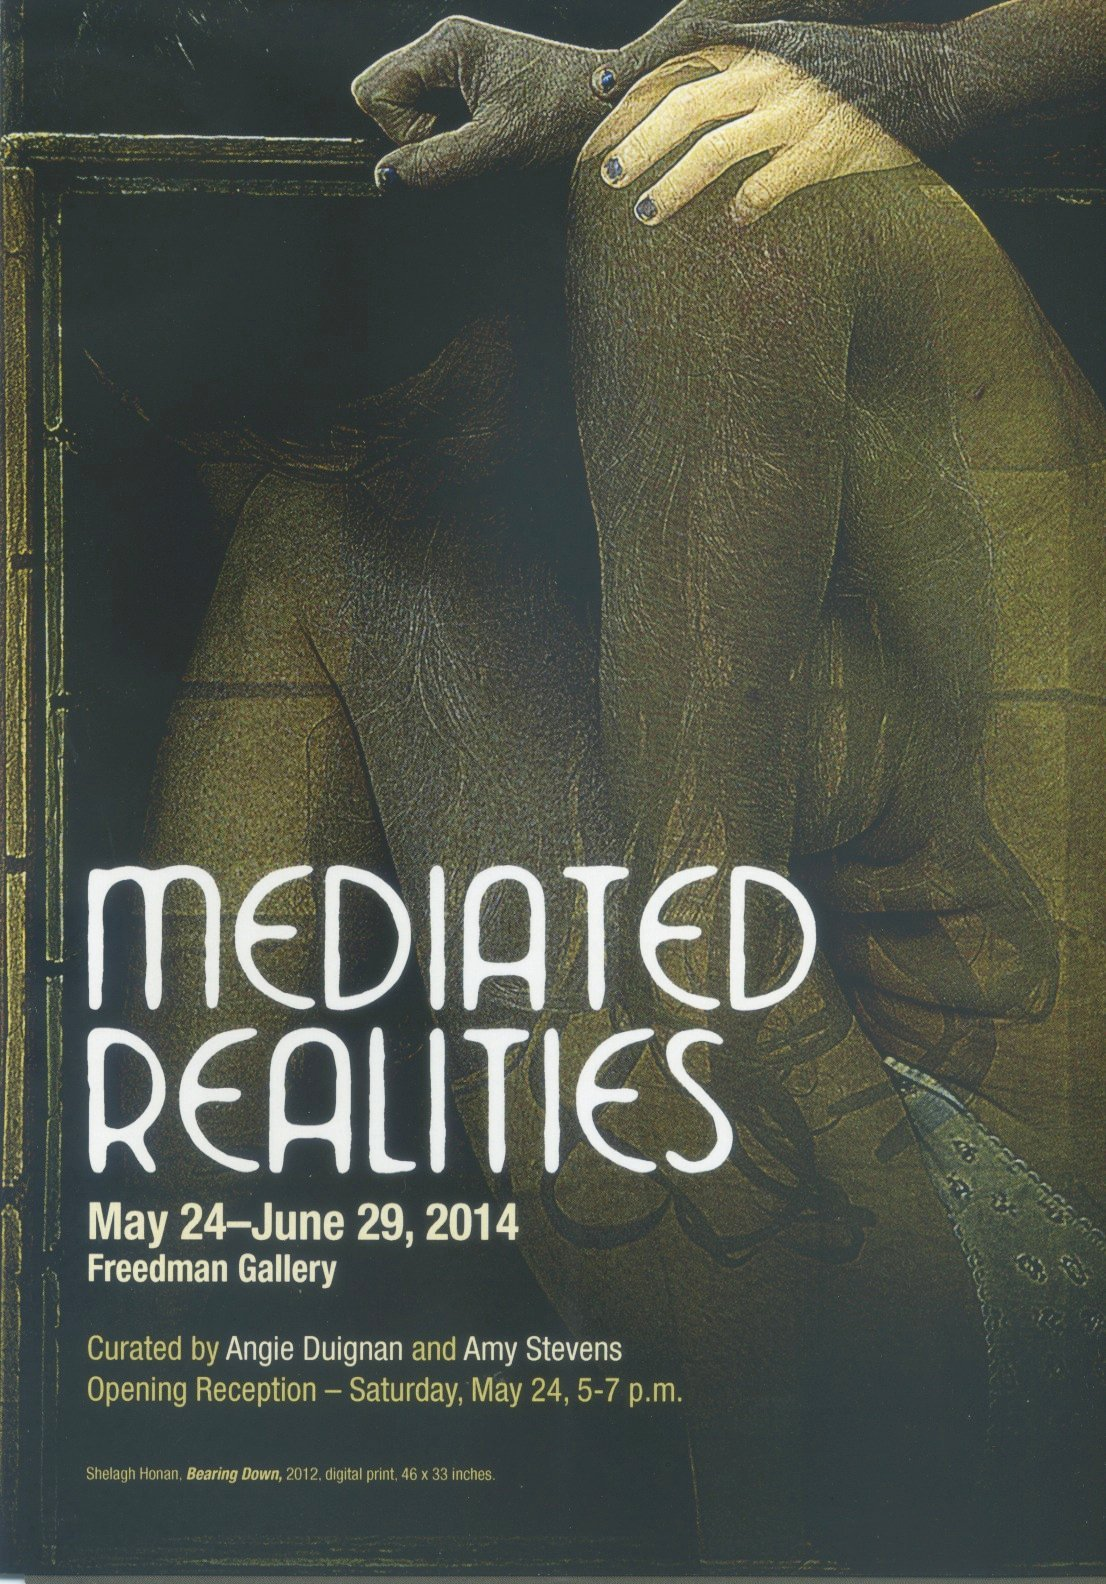 Mediated Realities, Freedman Gallery